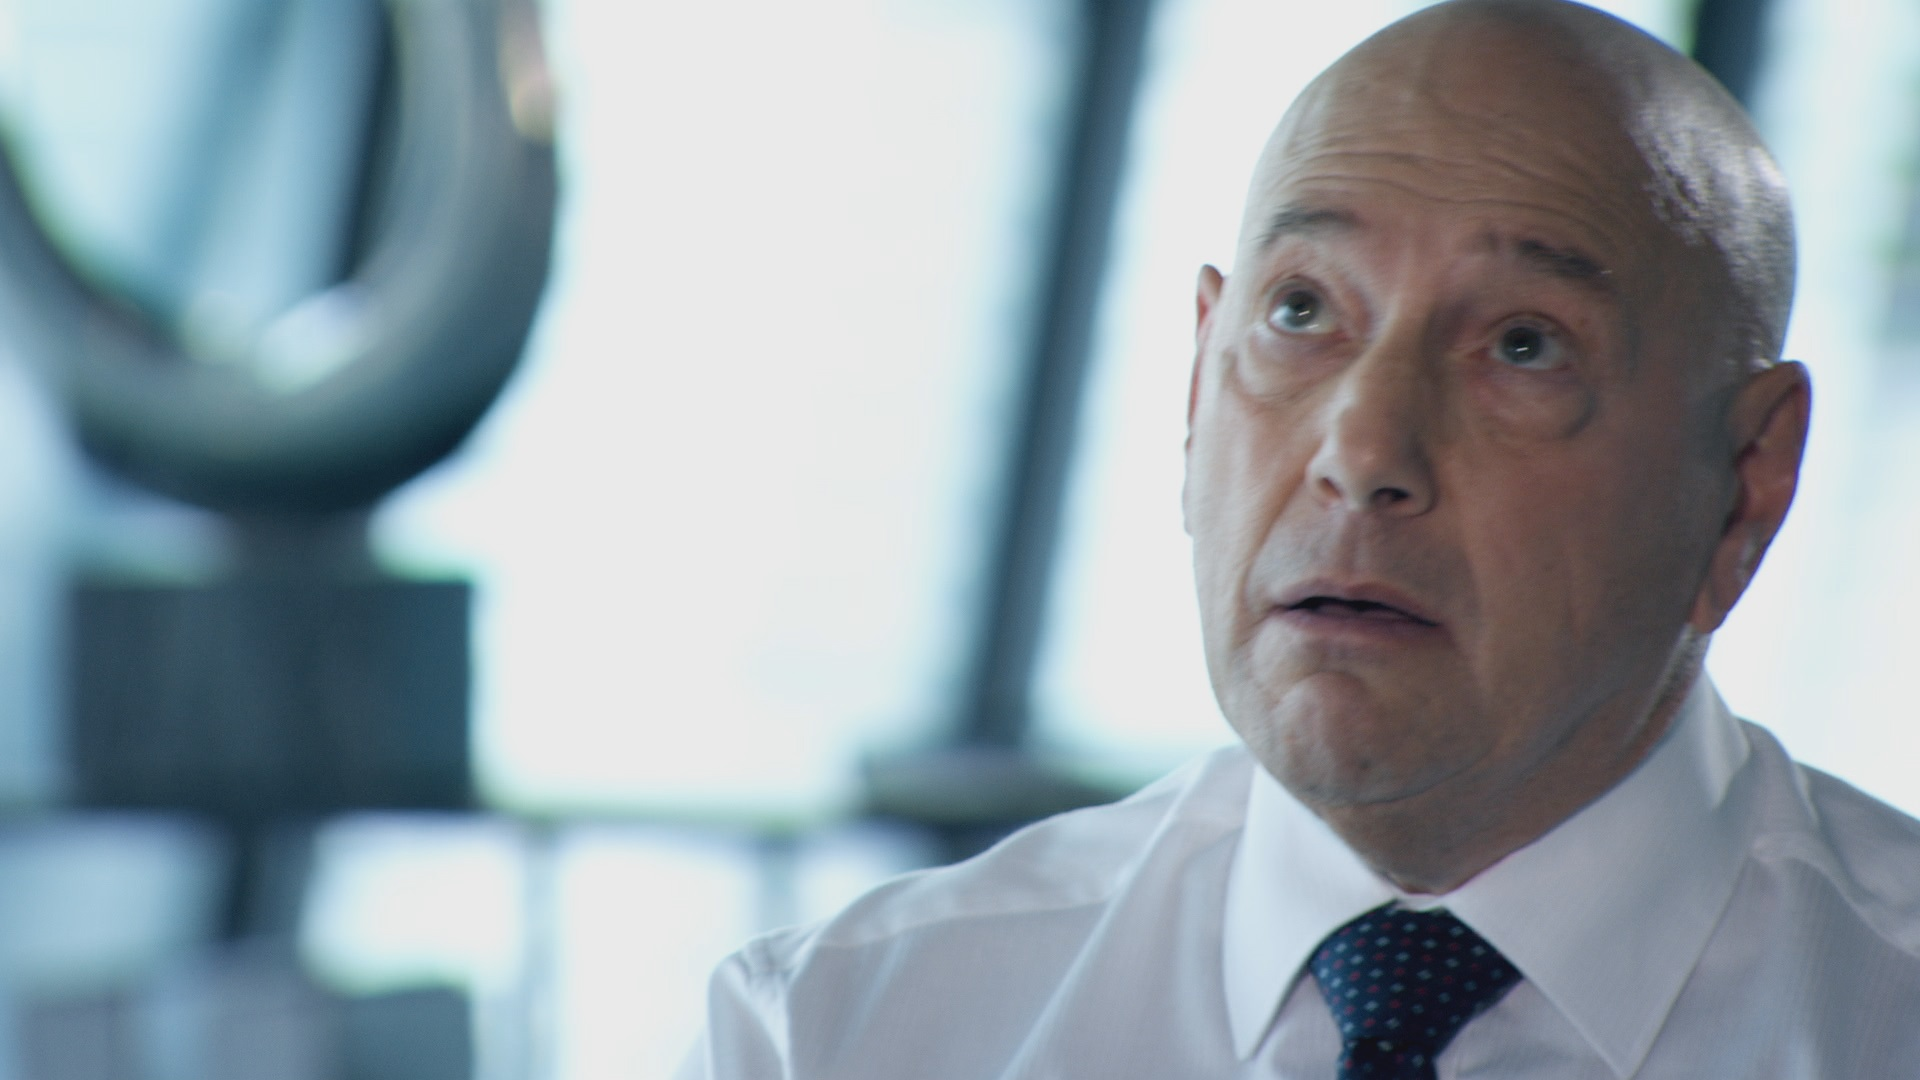 Claude Littner tells Apprentice candidate Courtney Wood 'I want to smack you around the face' during interviews